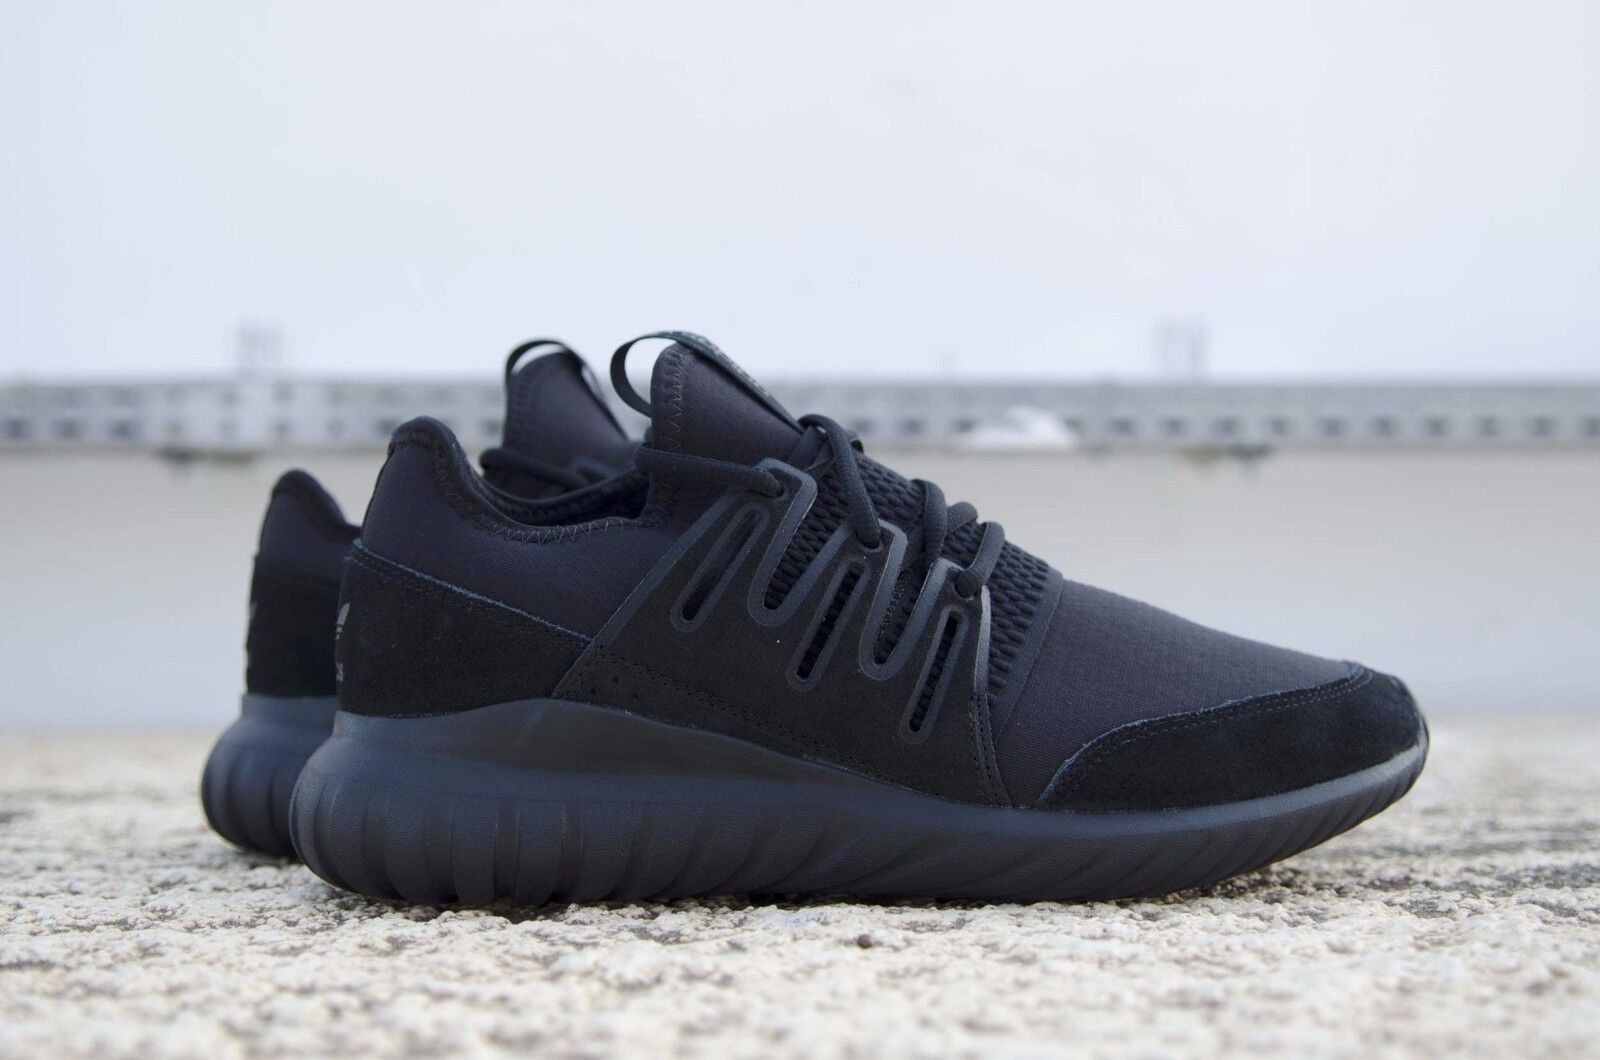 FW16 ADIDAS TUBULAR RADIAL CHAUSSURES DE SPORT Homme Homme GYM CHAUSSURES S80115